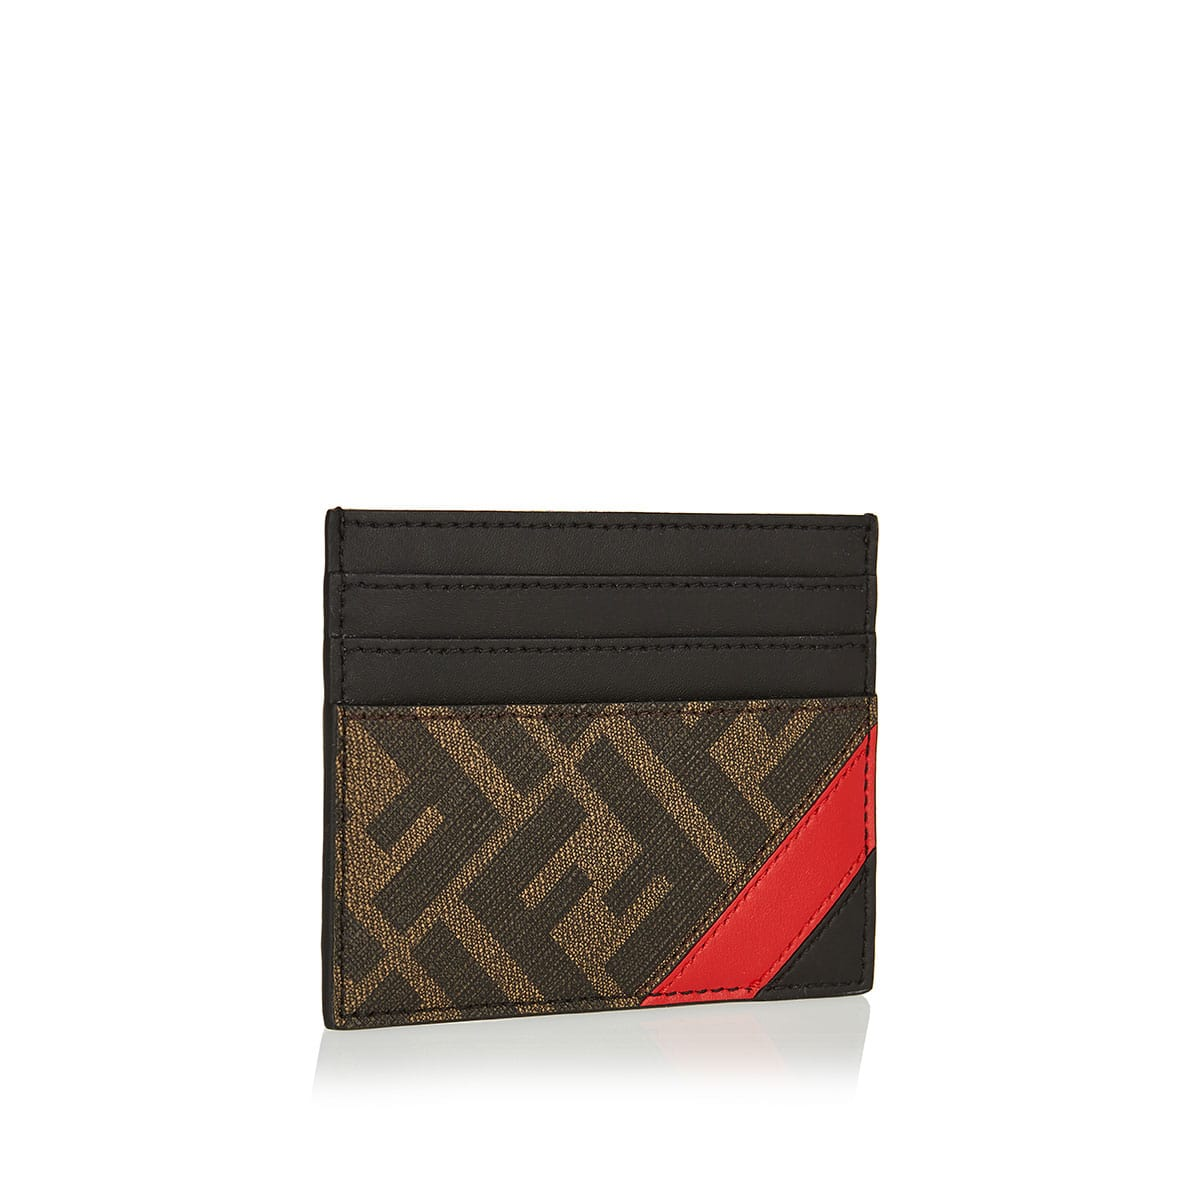 FF logo card case